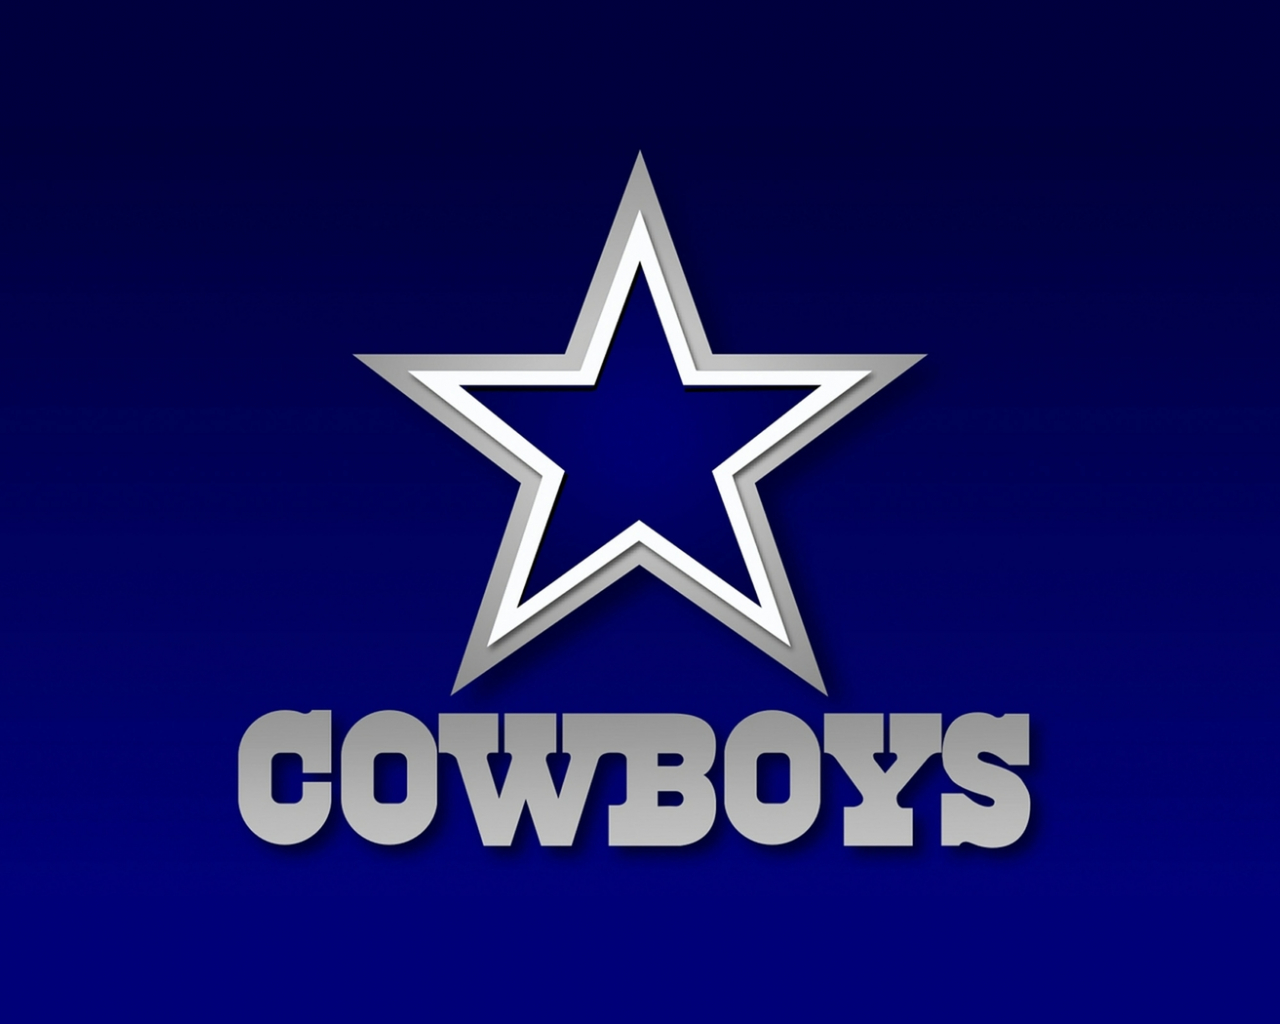 Free Download Dallas Cowboys Background Image Dallas Cowboys